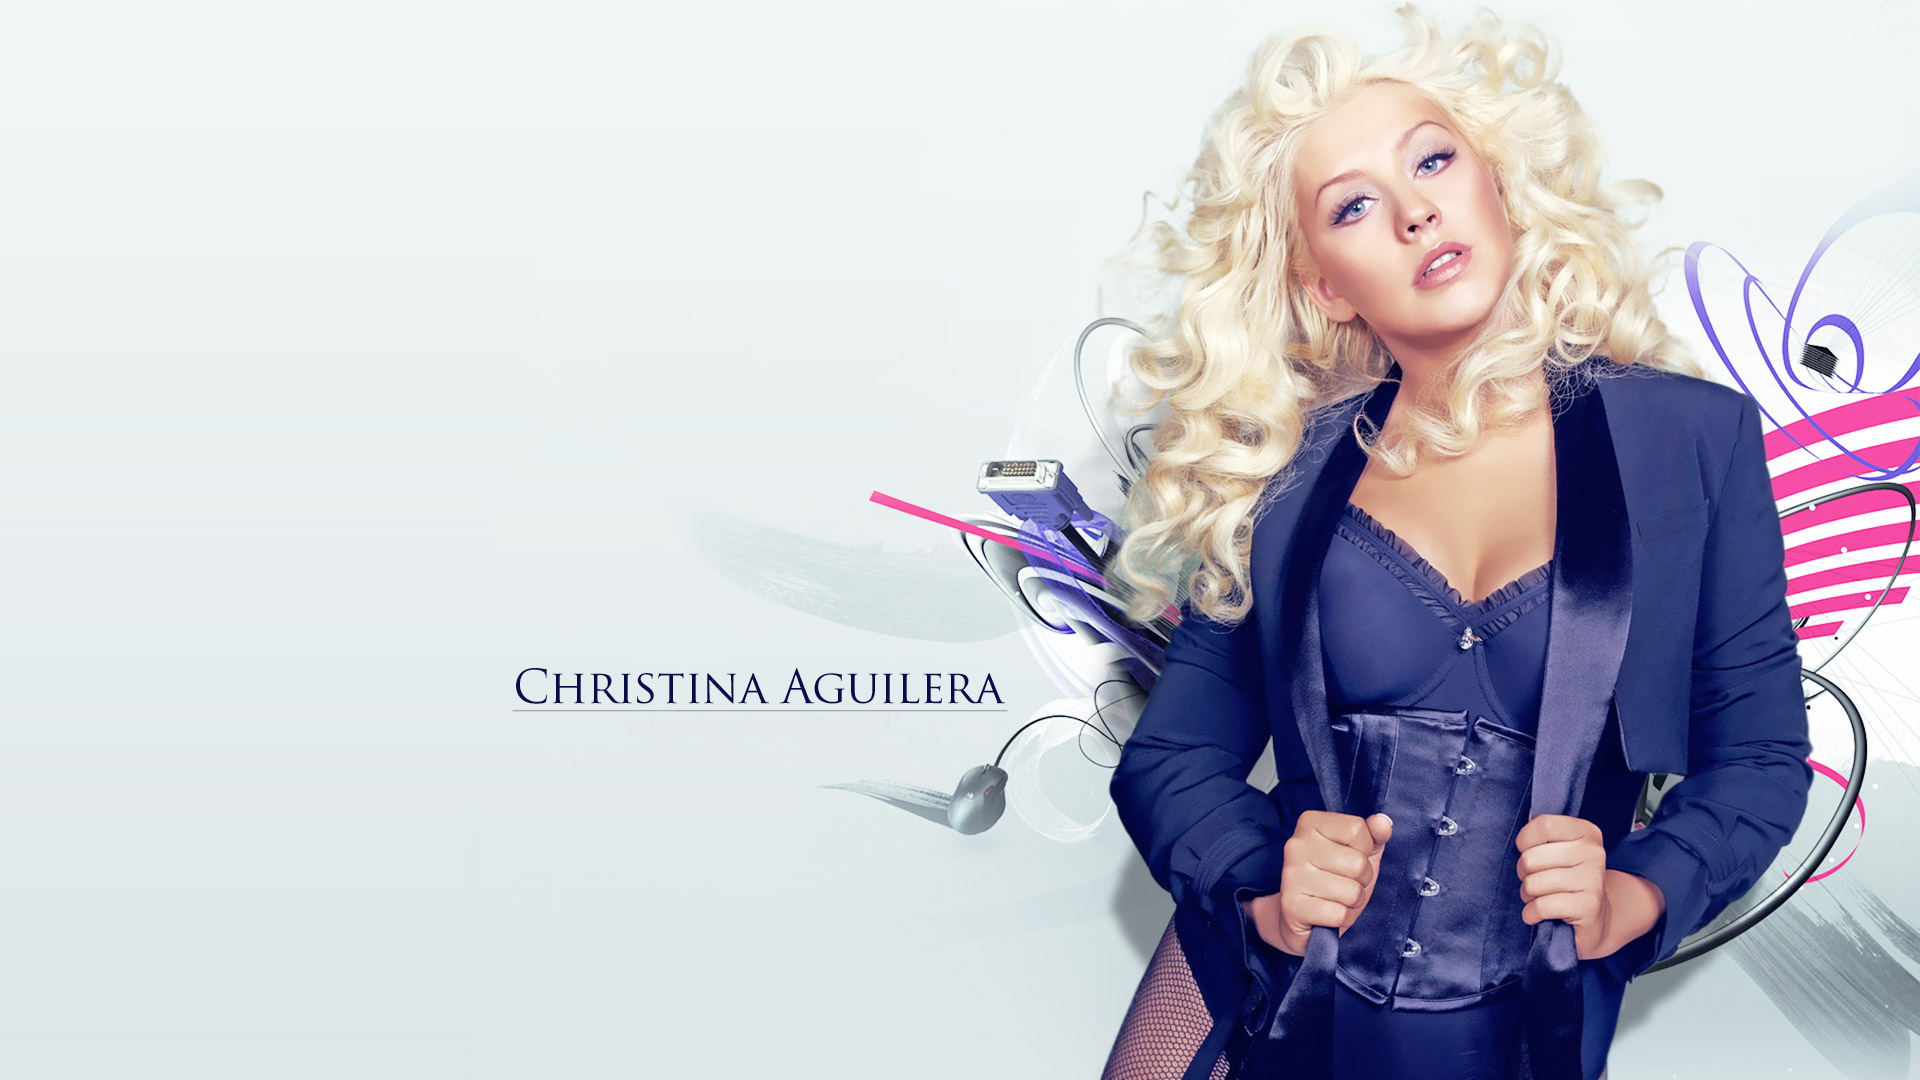 Christina Aguilera Hot And Sexy Wallpaper Hd Daily Pics Update HD 1920x1080